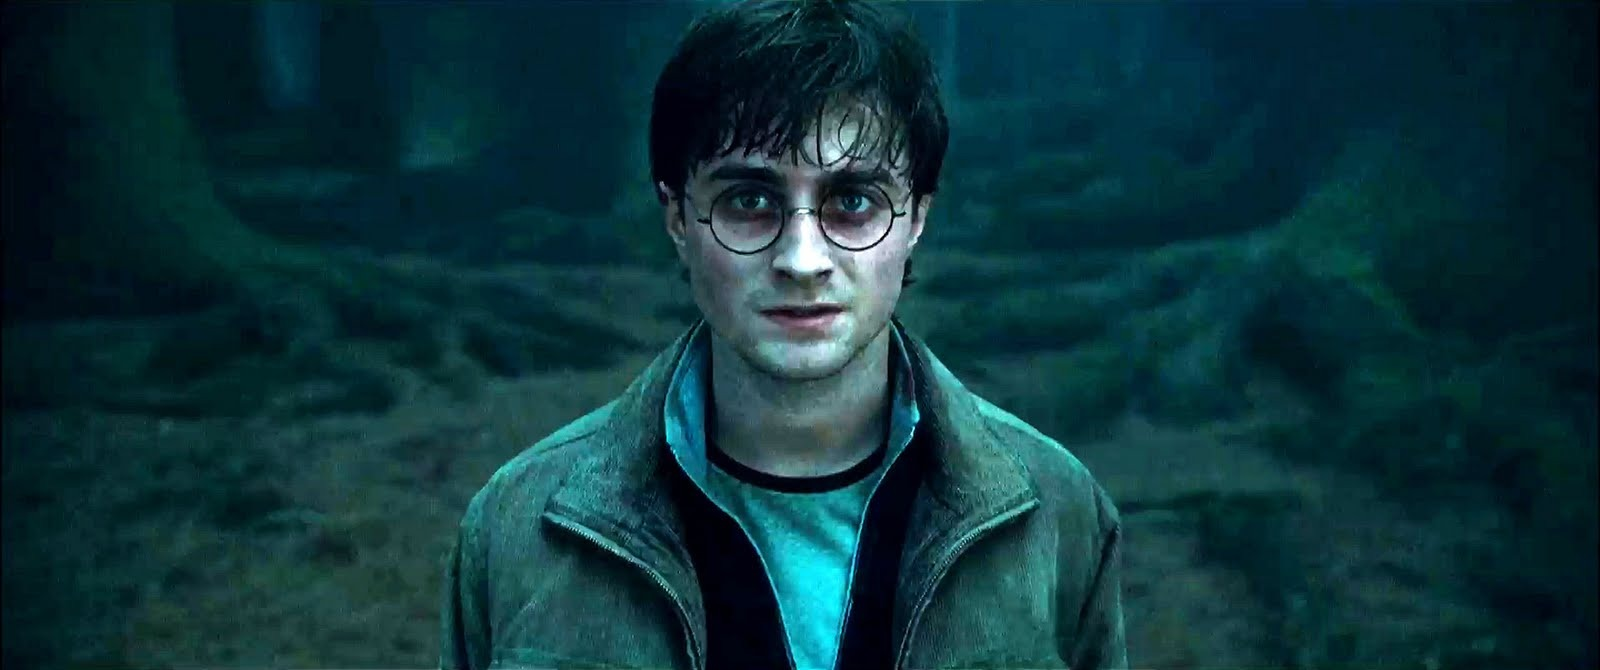 harry-potter-and-the-deathly-hallows41